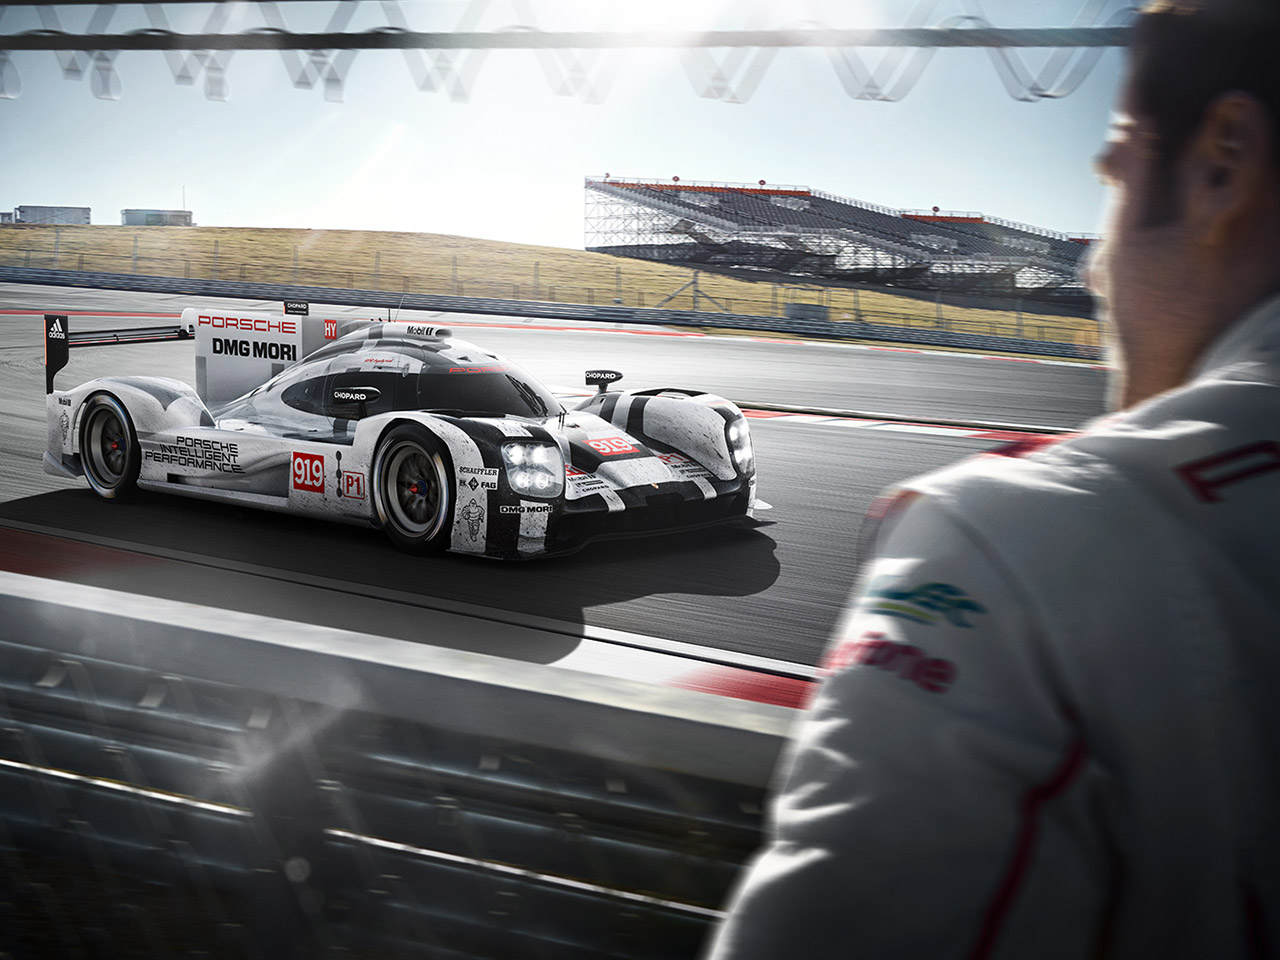 Porsche Porsche at the FIA WEC 2015: What lies ahead